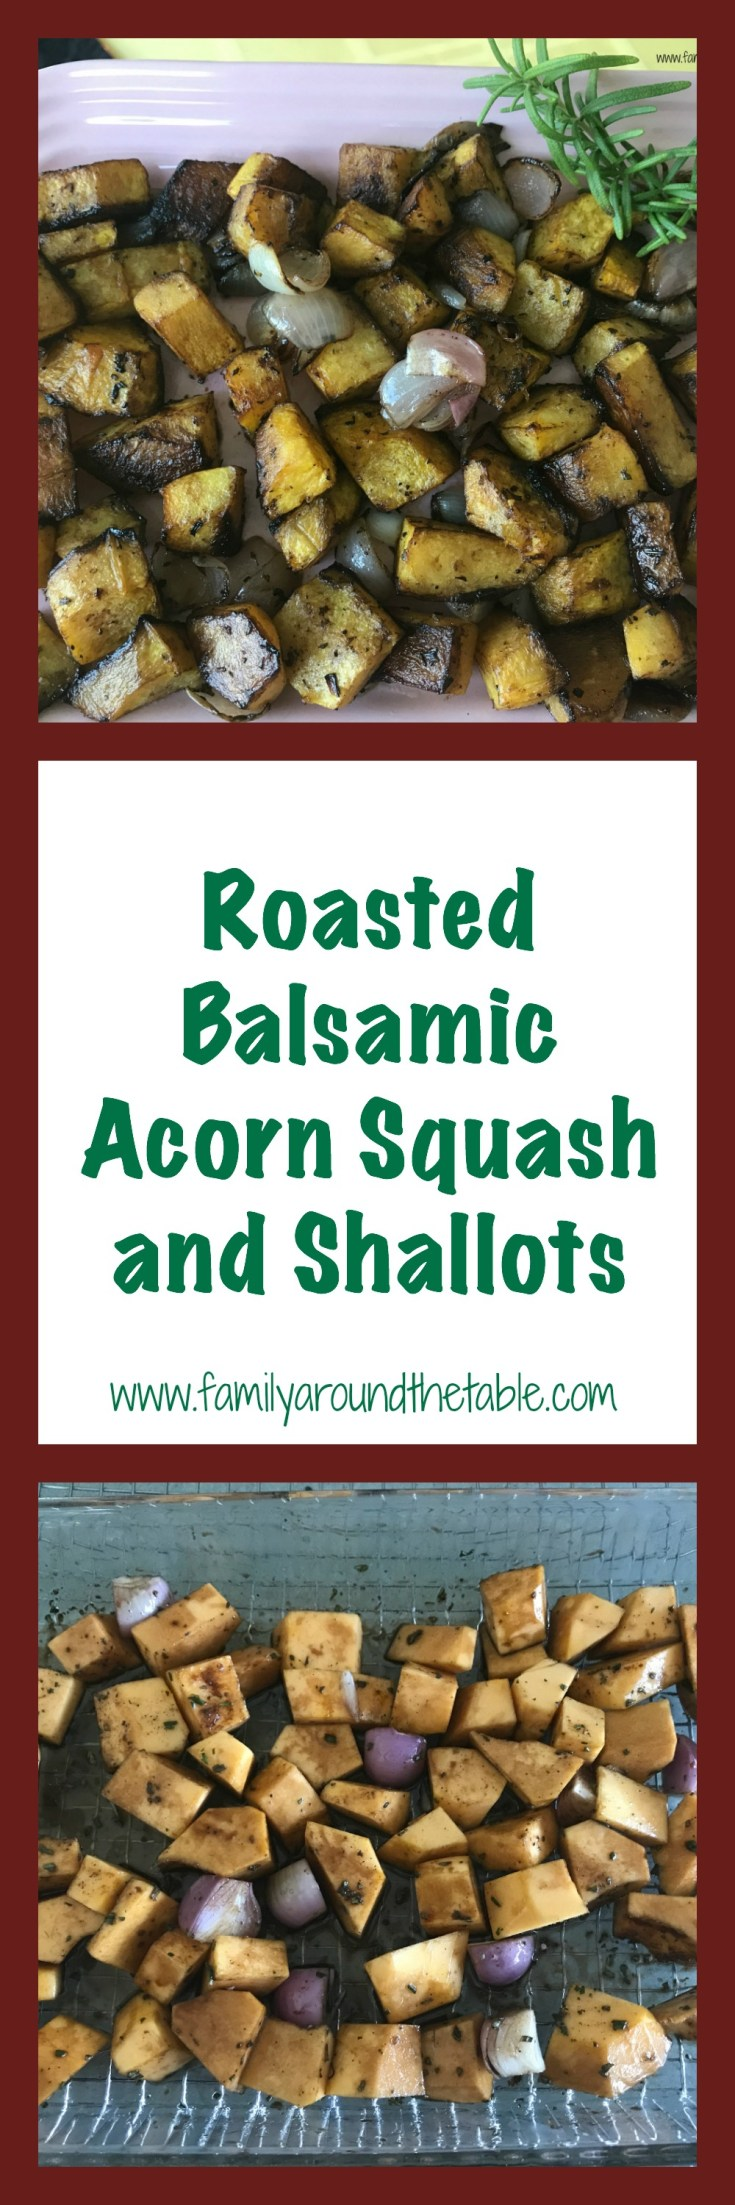 Make the best of fall produce with roasted balsamic acorn squash and shallots.